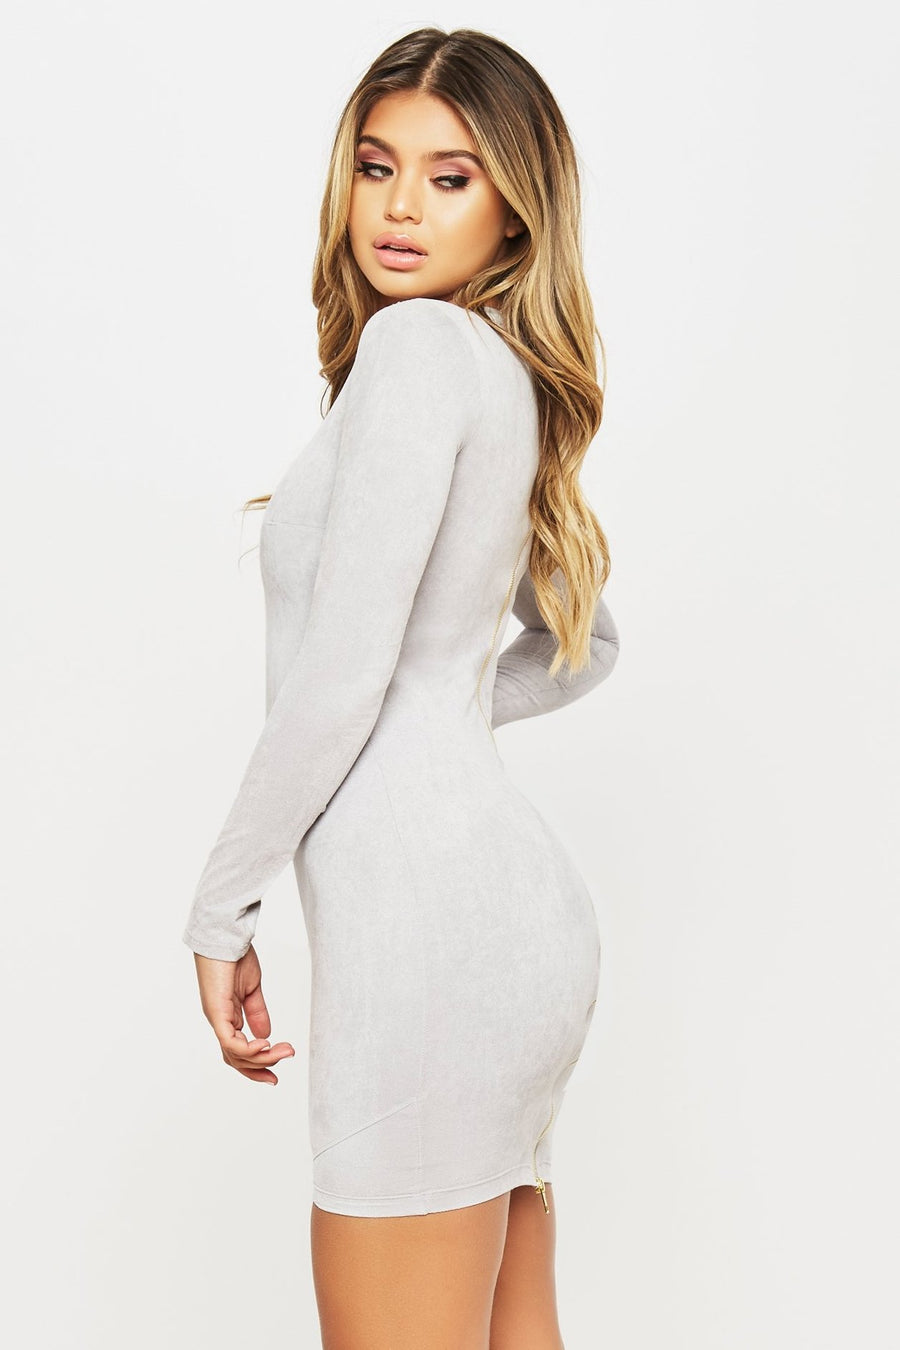 Up All Night Dress - HoneyBum